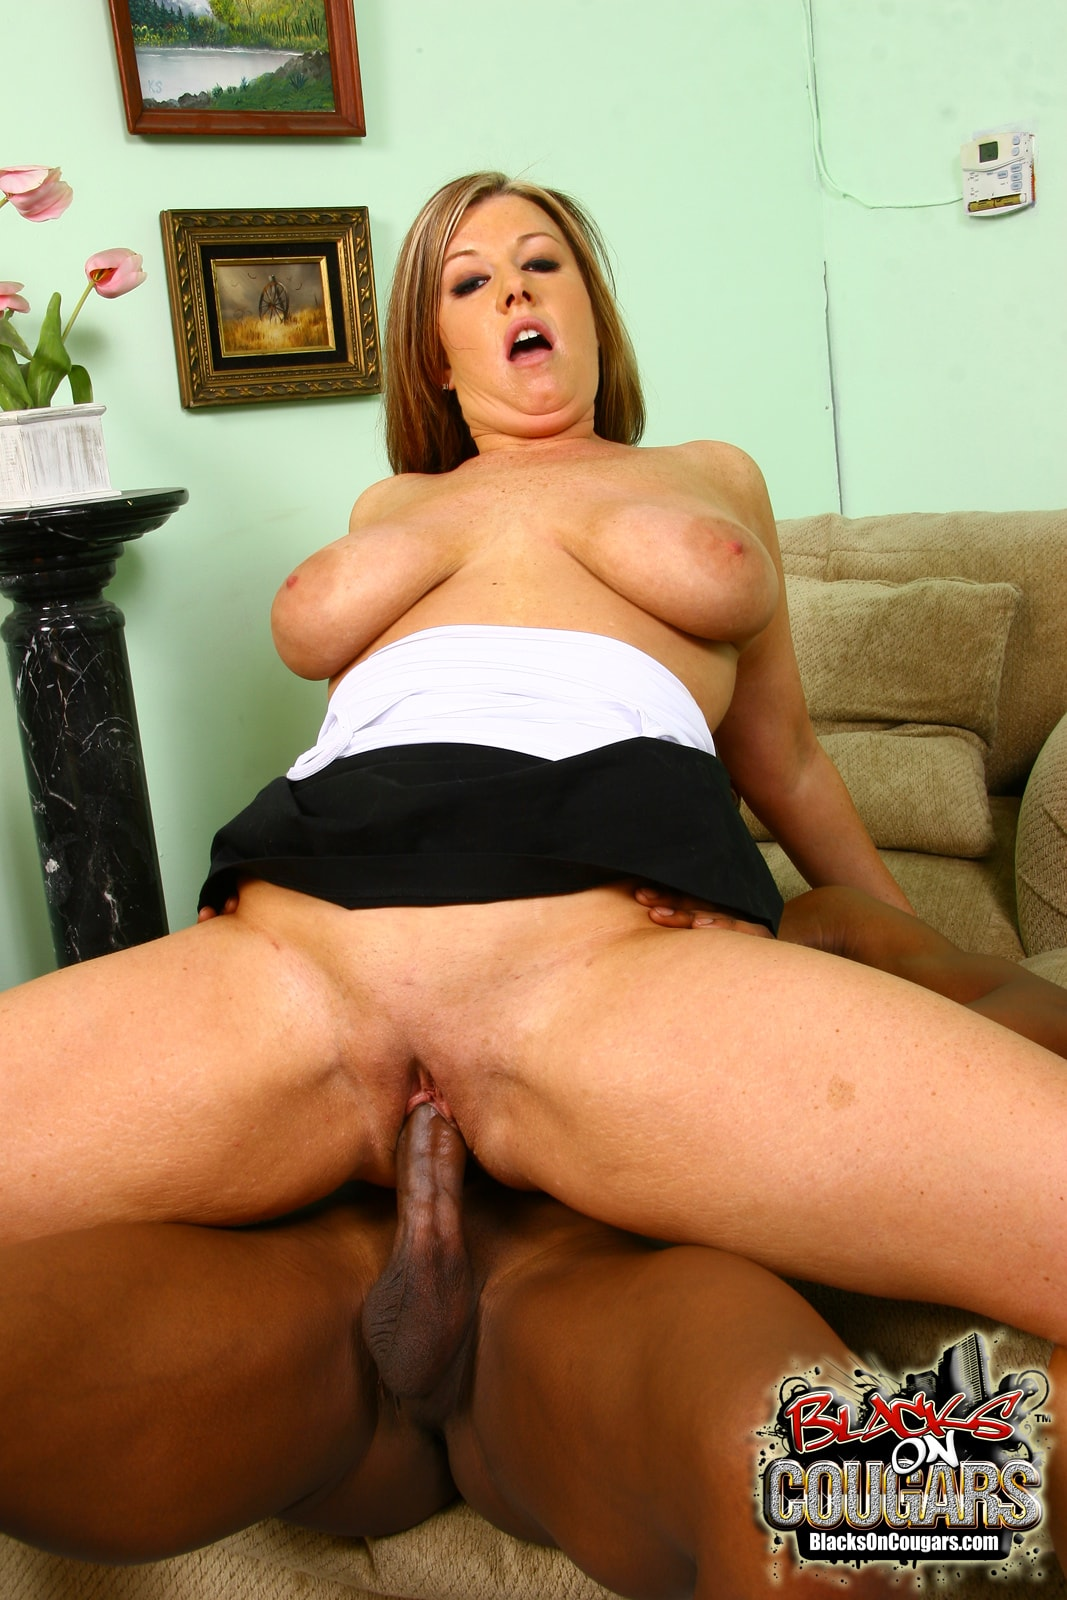 Dogfart '- Blacks On Cougars' starring Zoey Andrews (Photo 26)